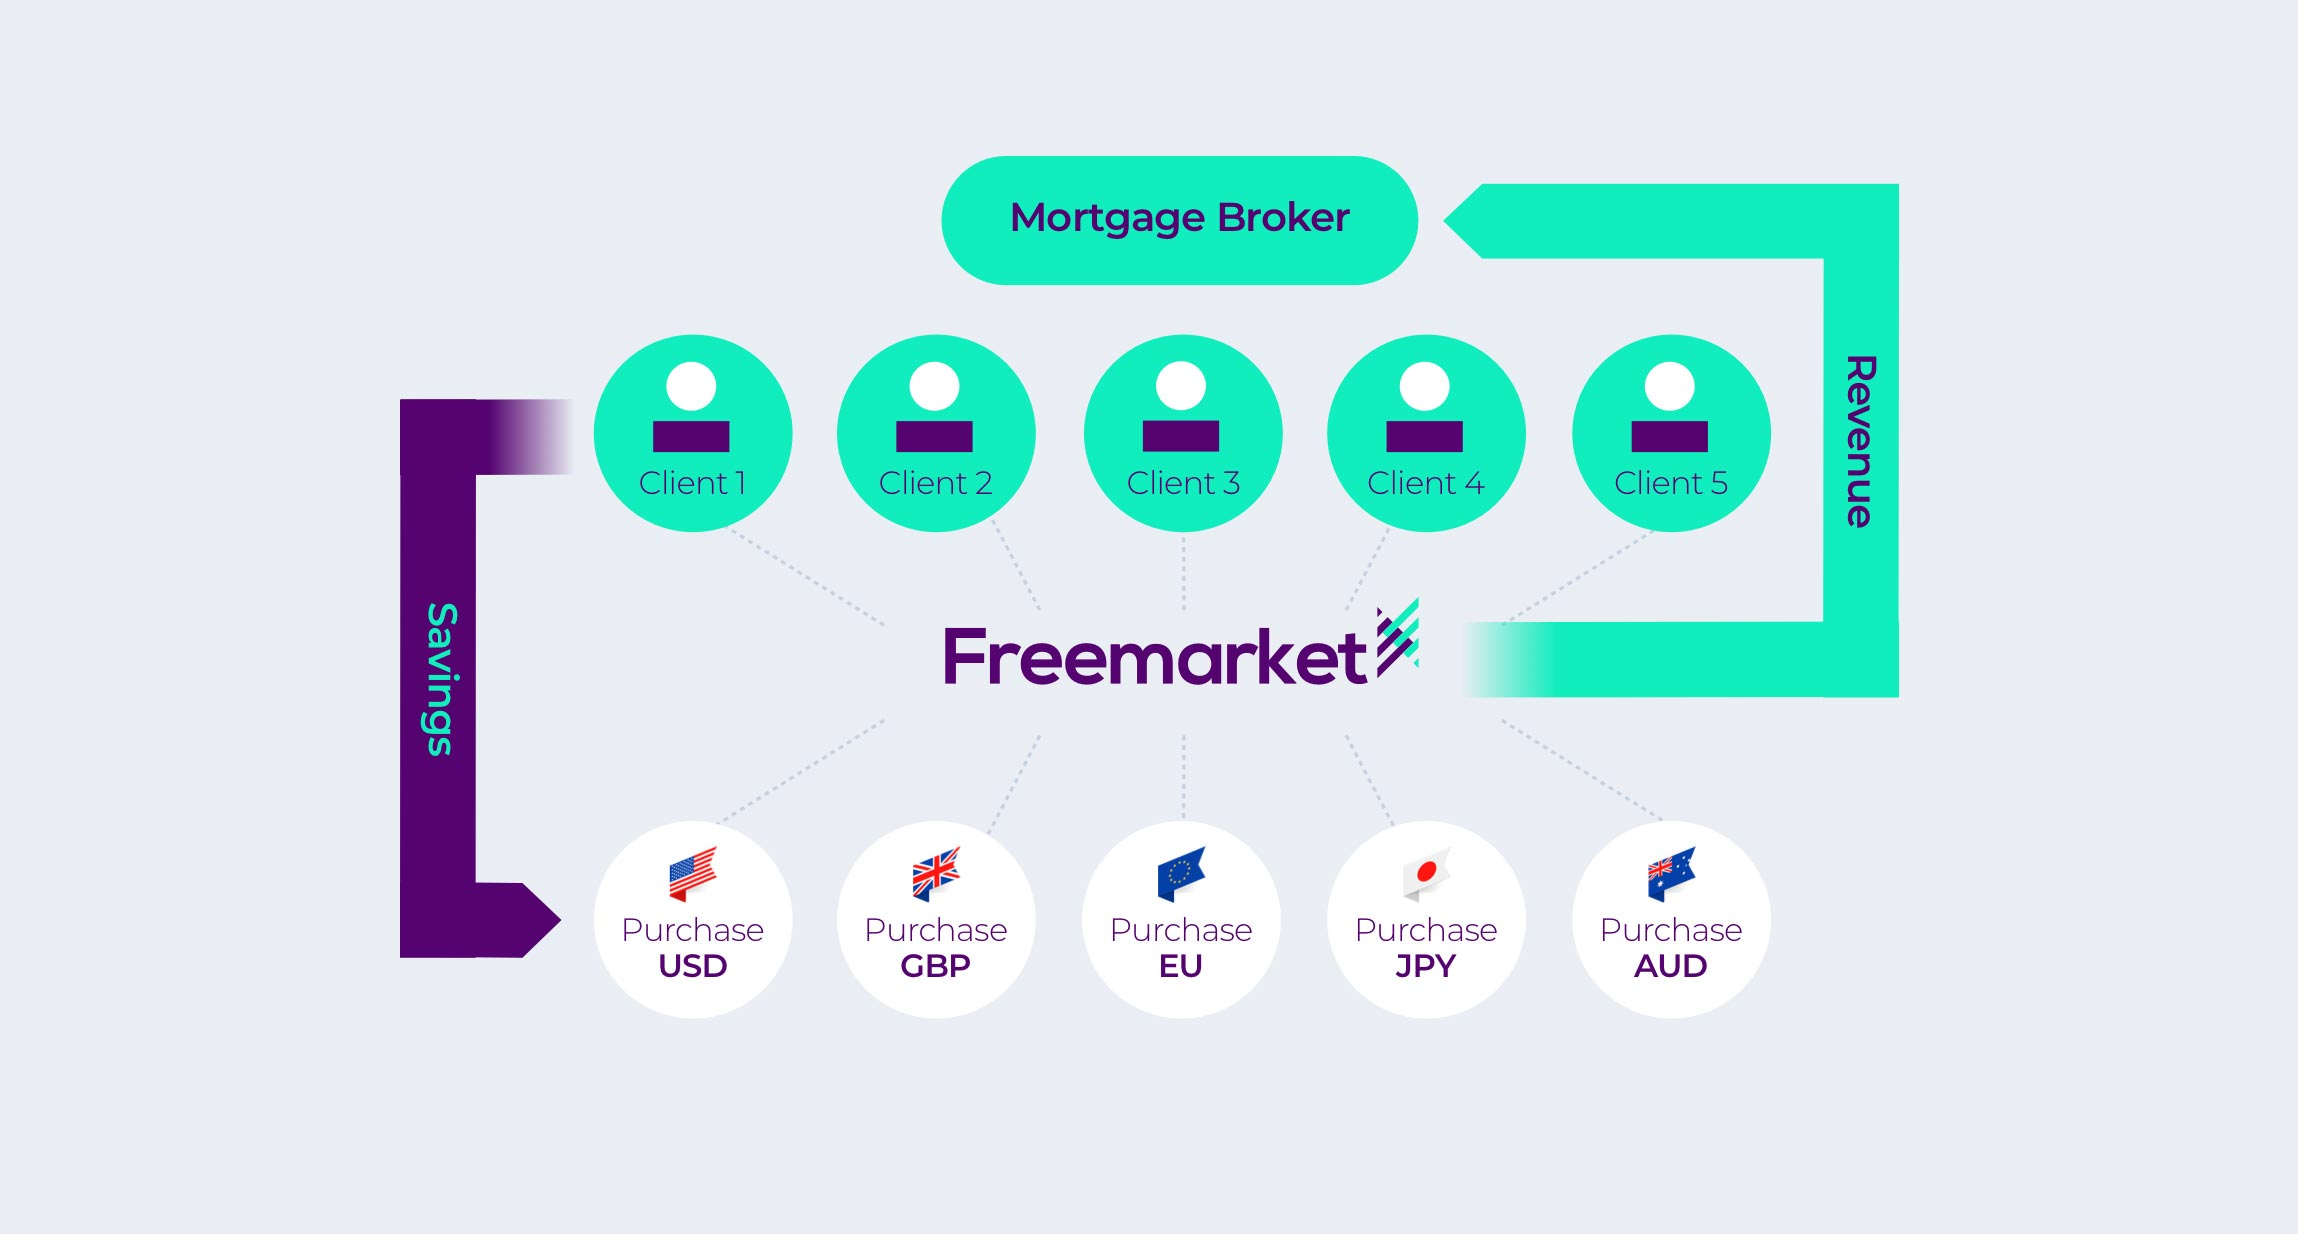 Mortgage Broker diagram